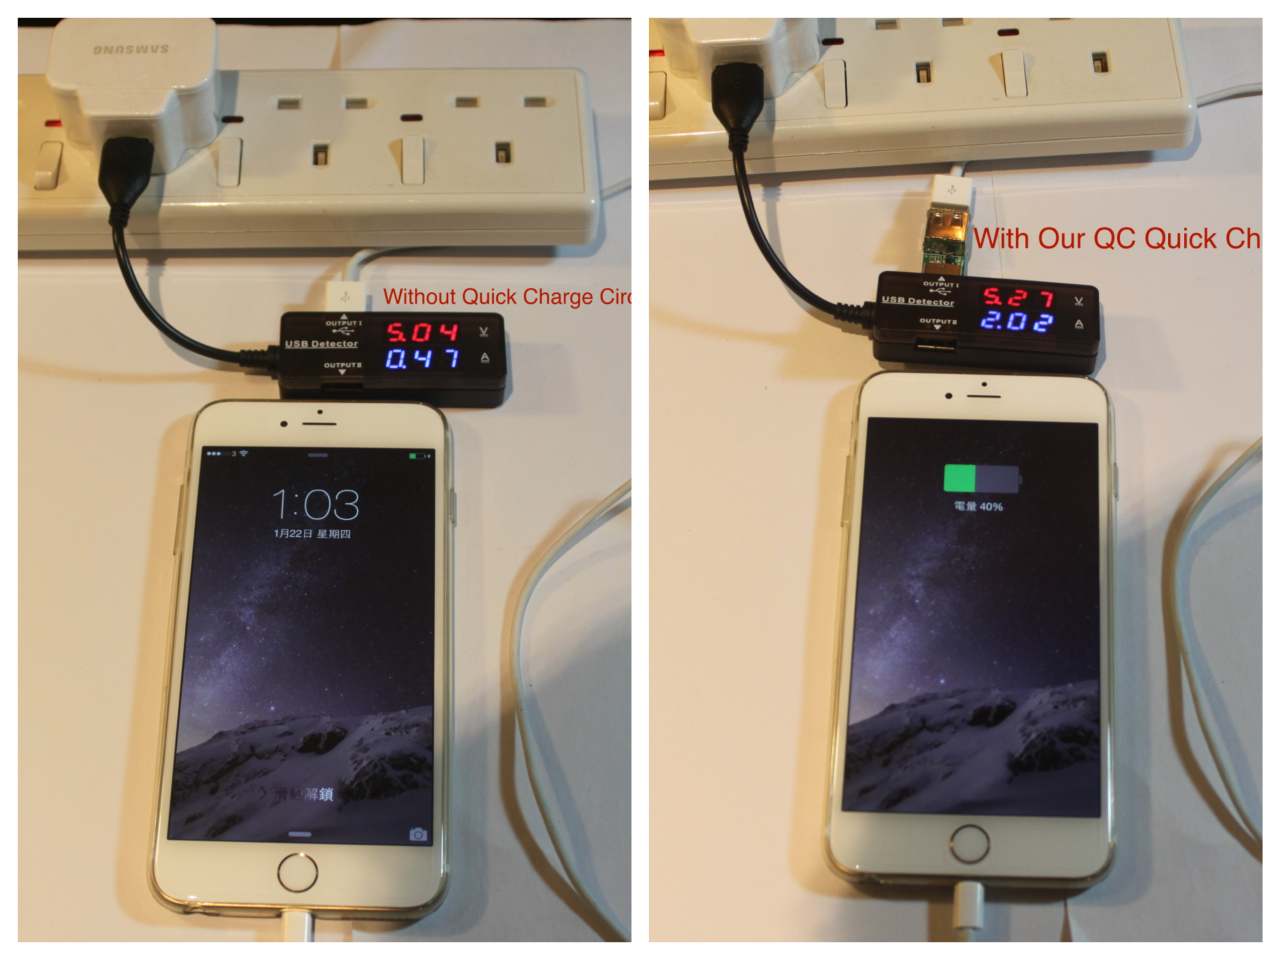 iphone quick charge. it is an ultra portable charger with fast charging circuit designed to fully charge your smartphone, support iphone 6/6+,samsung and qc 2.0. iphone quick